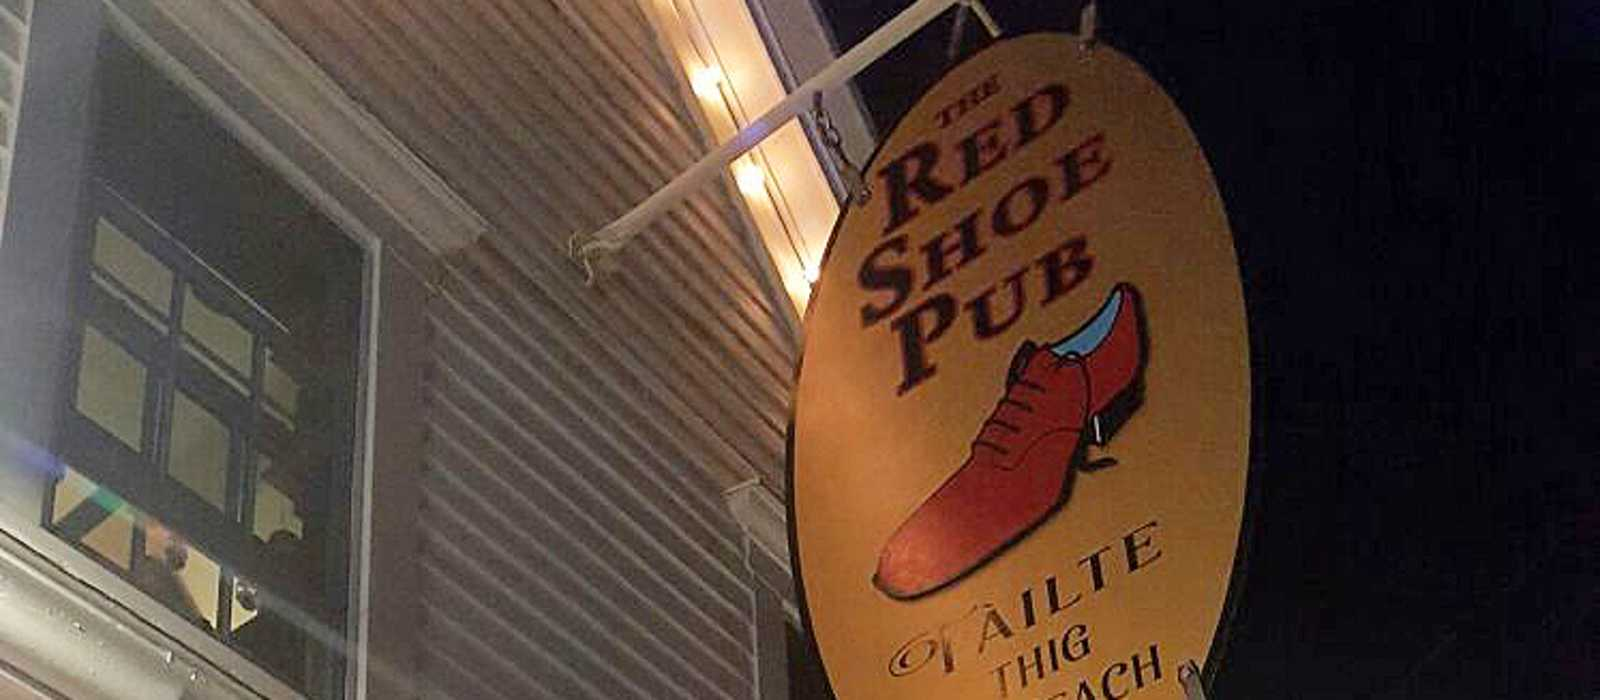 Red Shoe Pub in Mabou